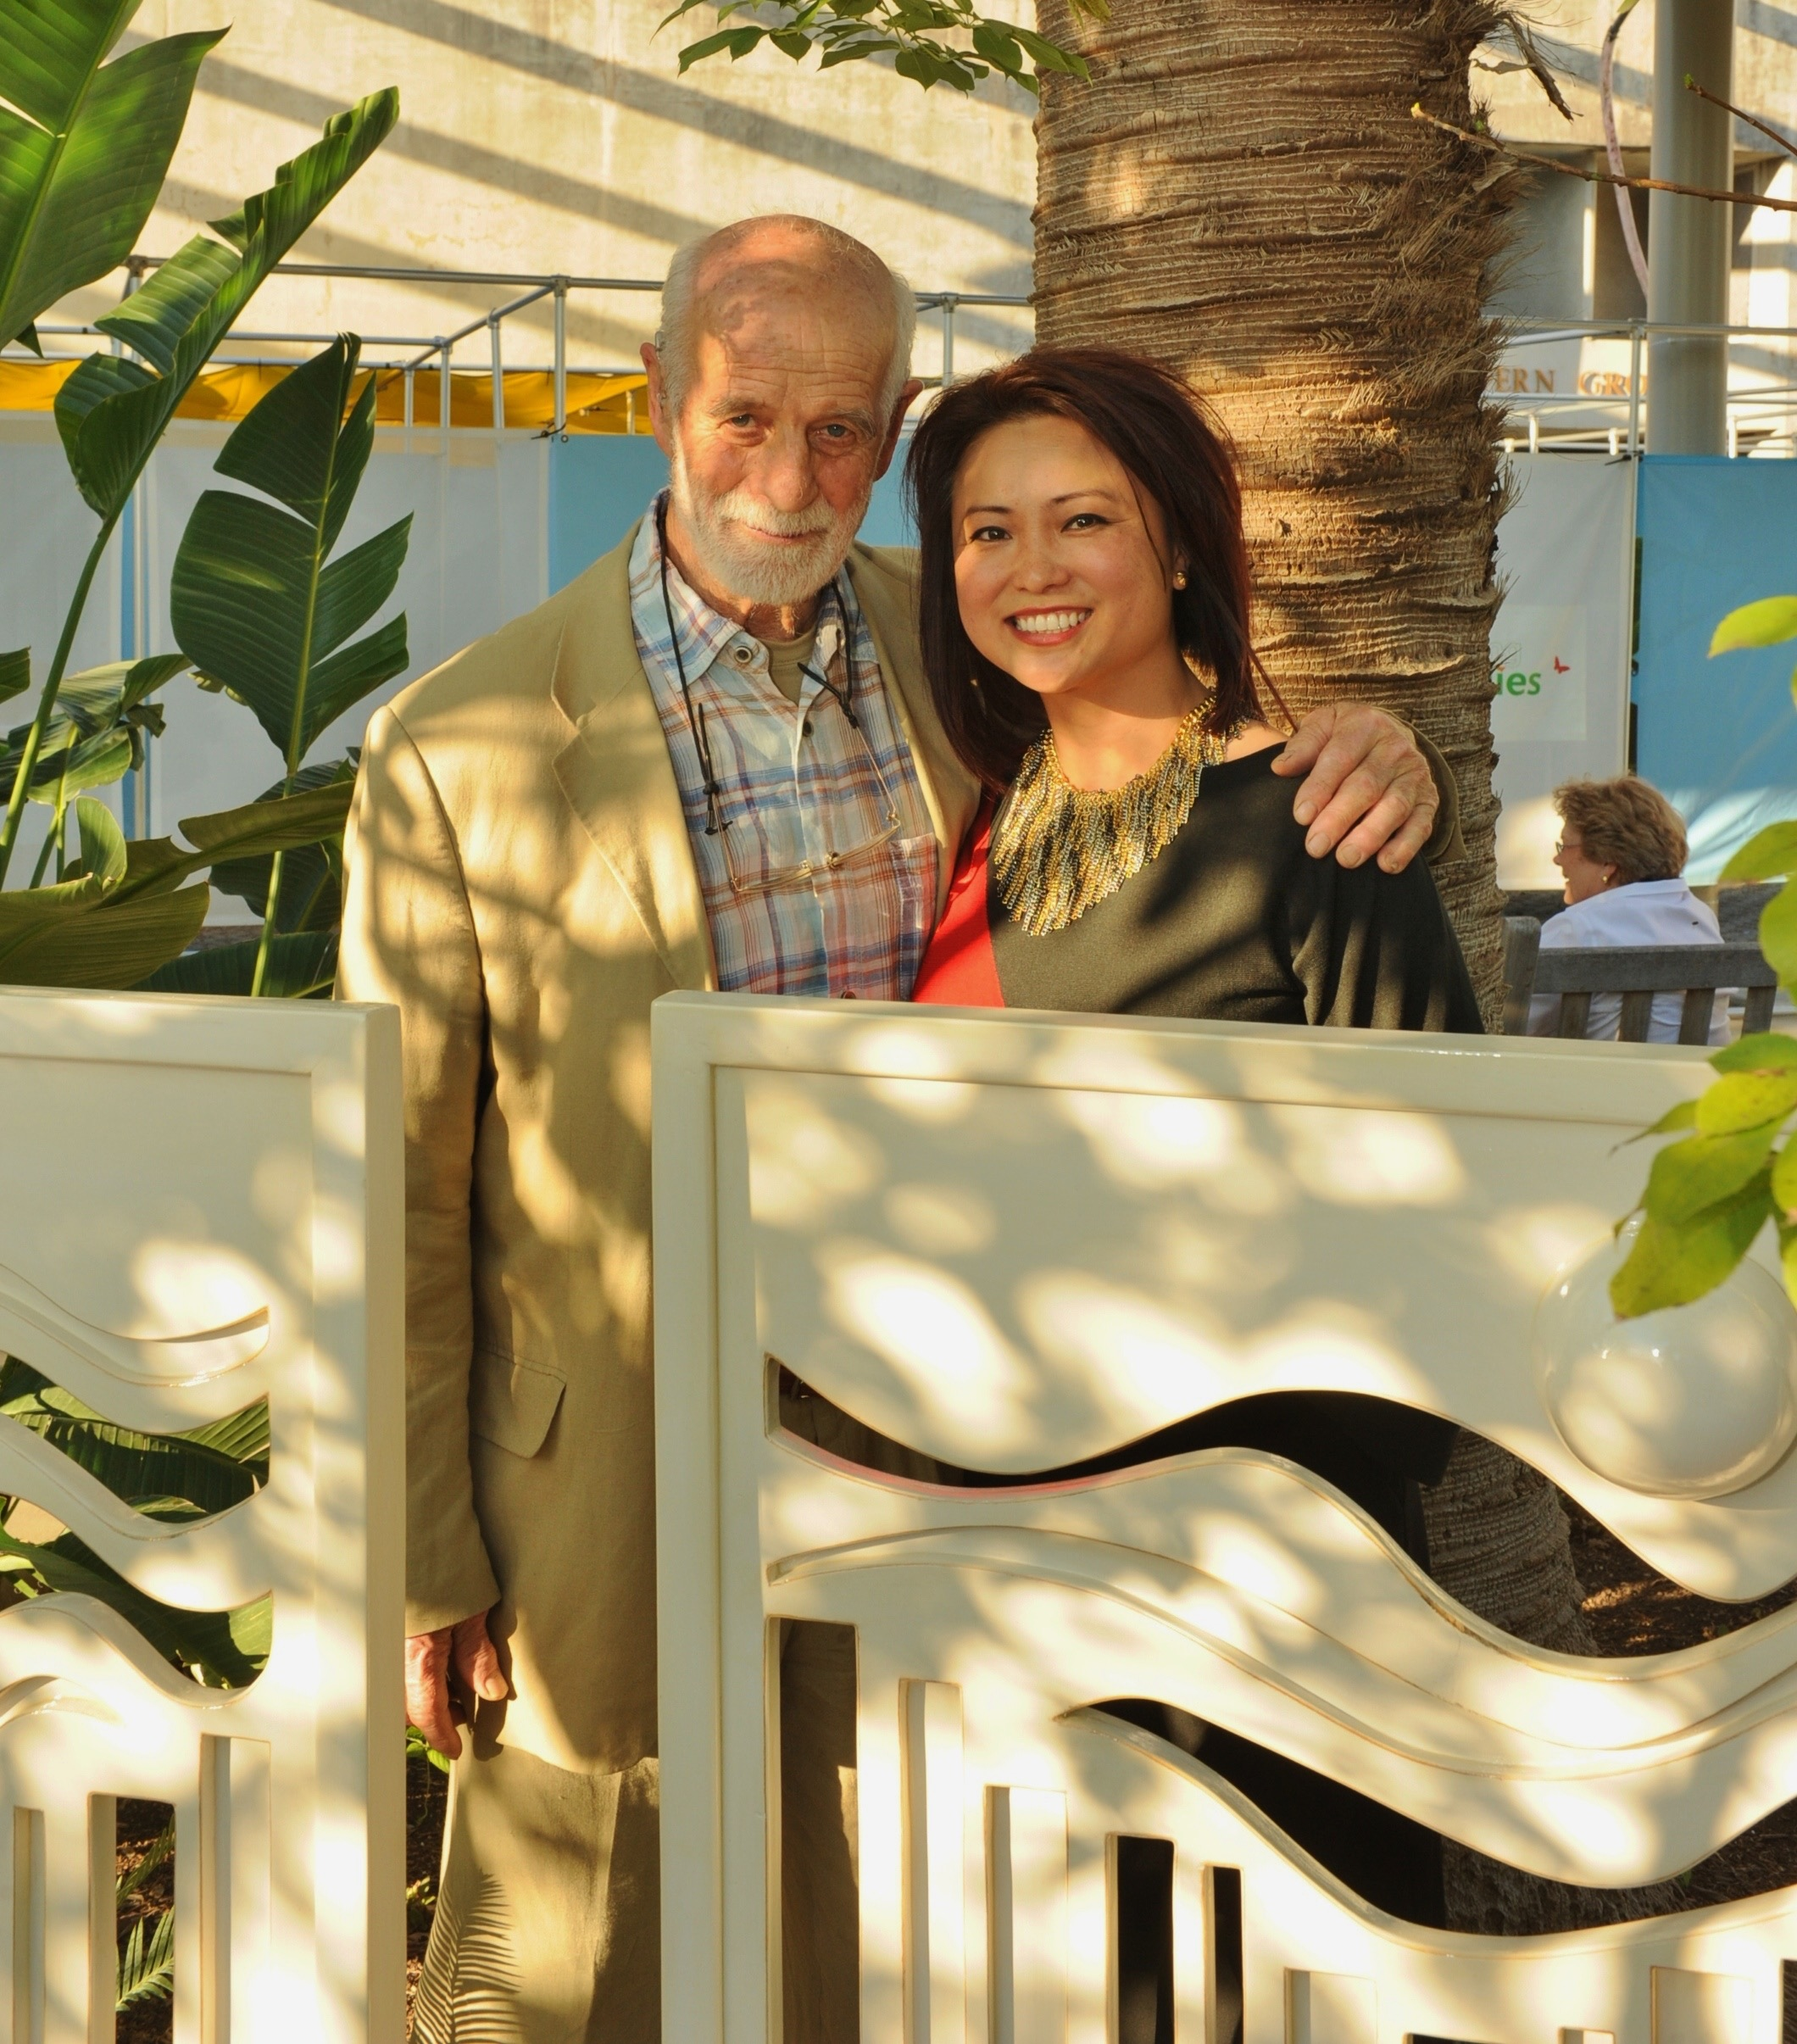 Linda and renowned artist Philip King with her work  Garden Screens  at the San Antonio Botanical Garden - 2012